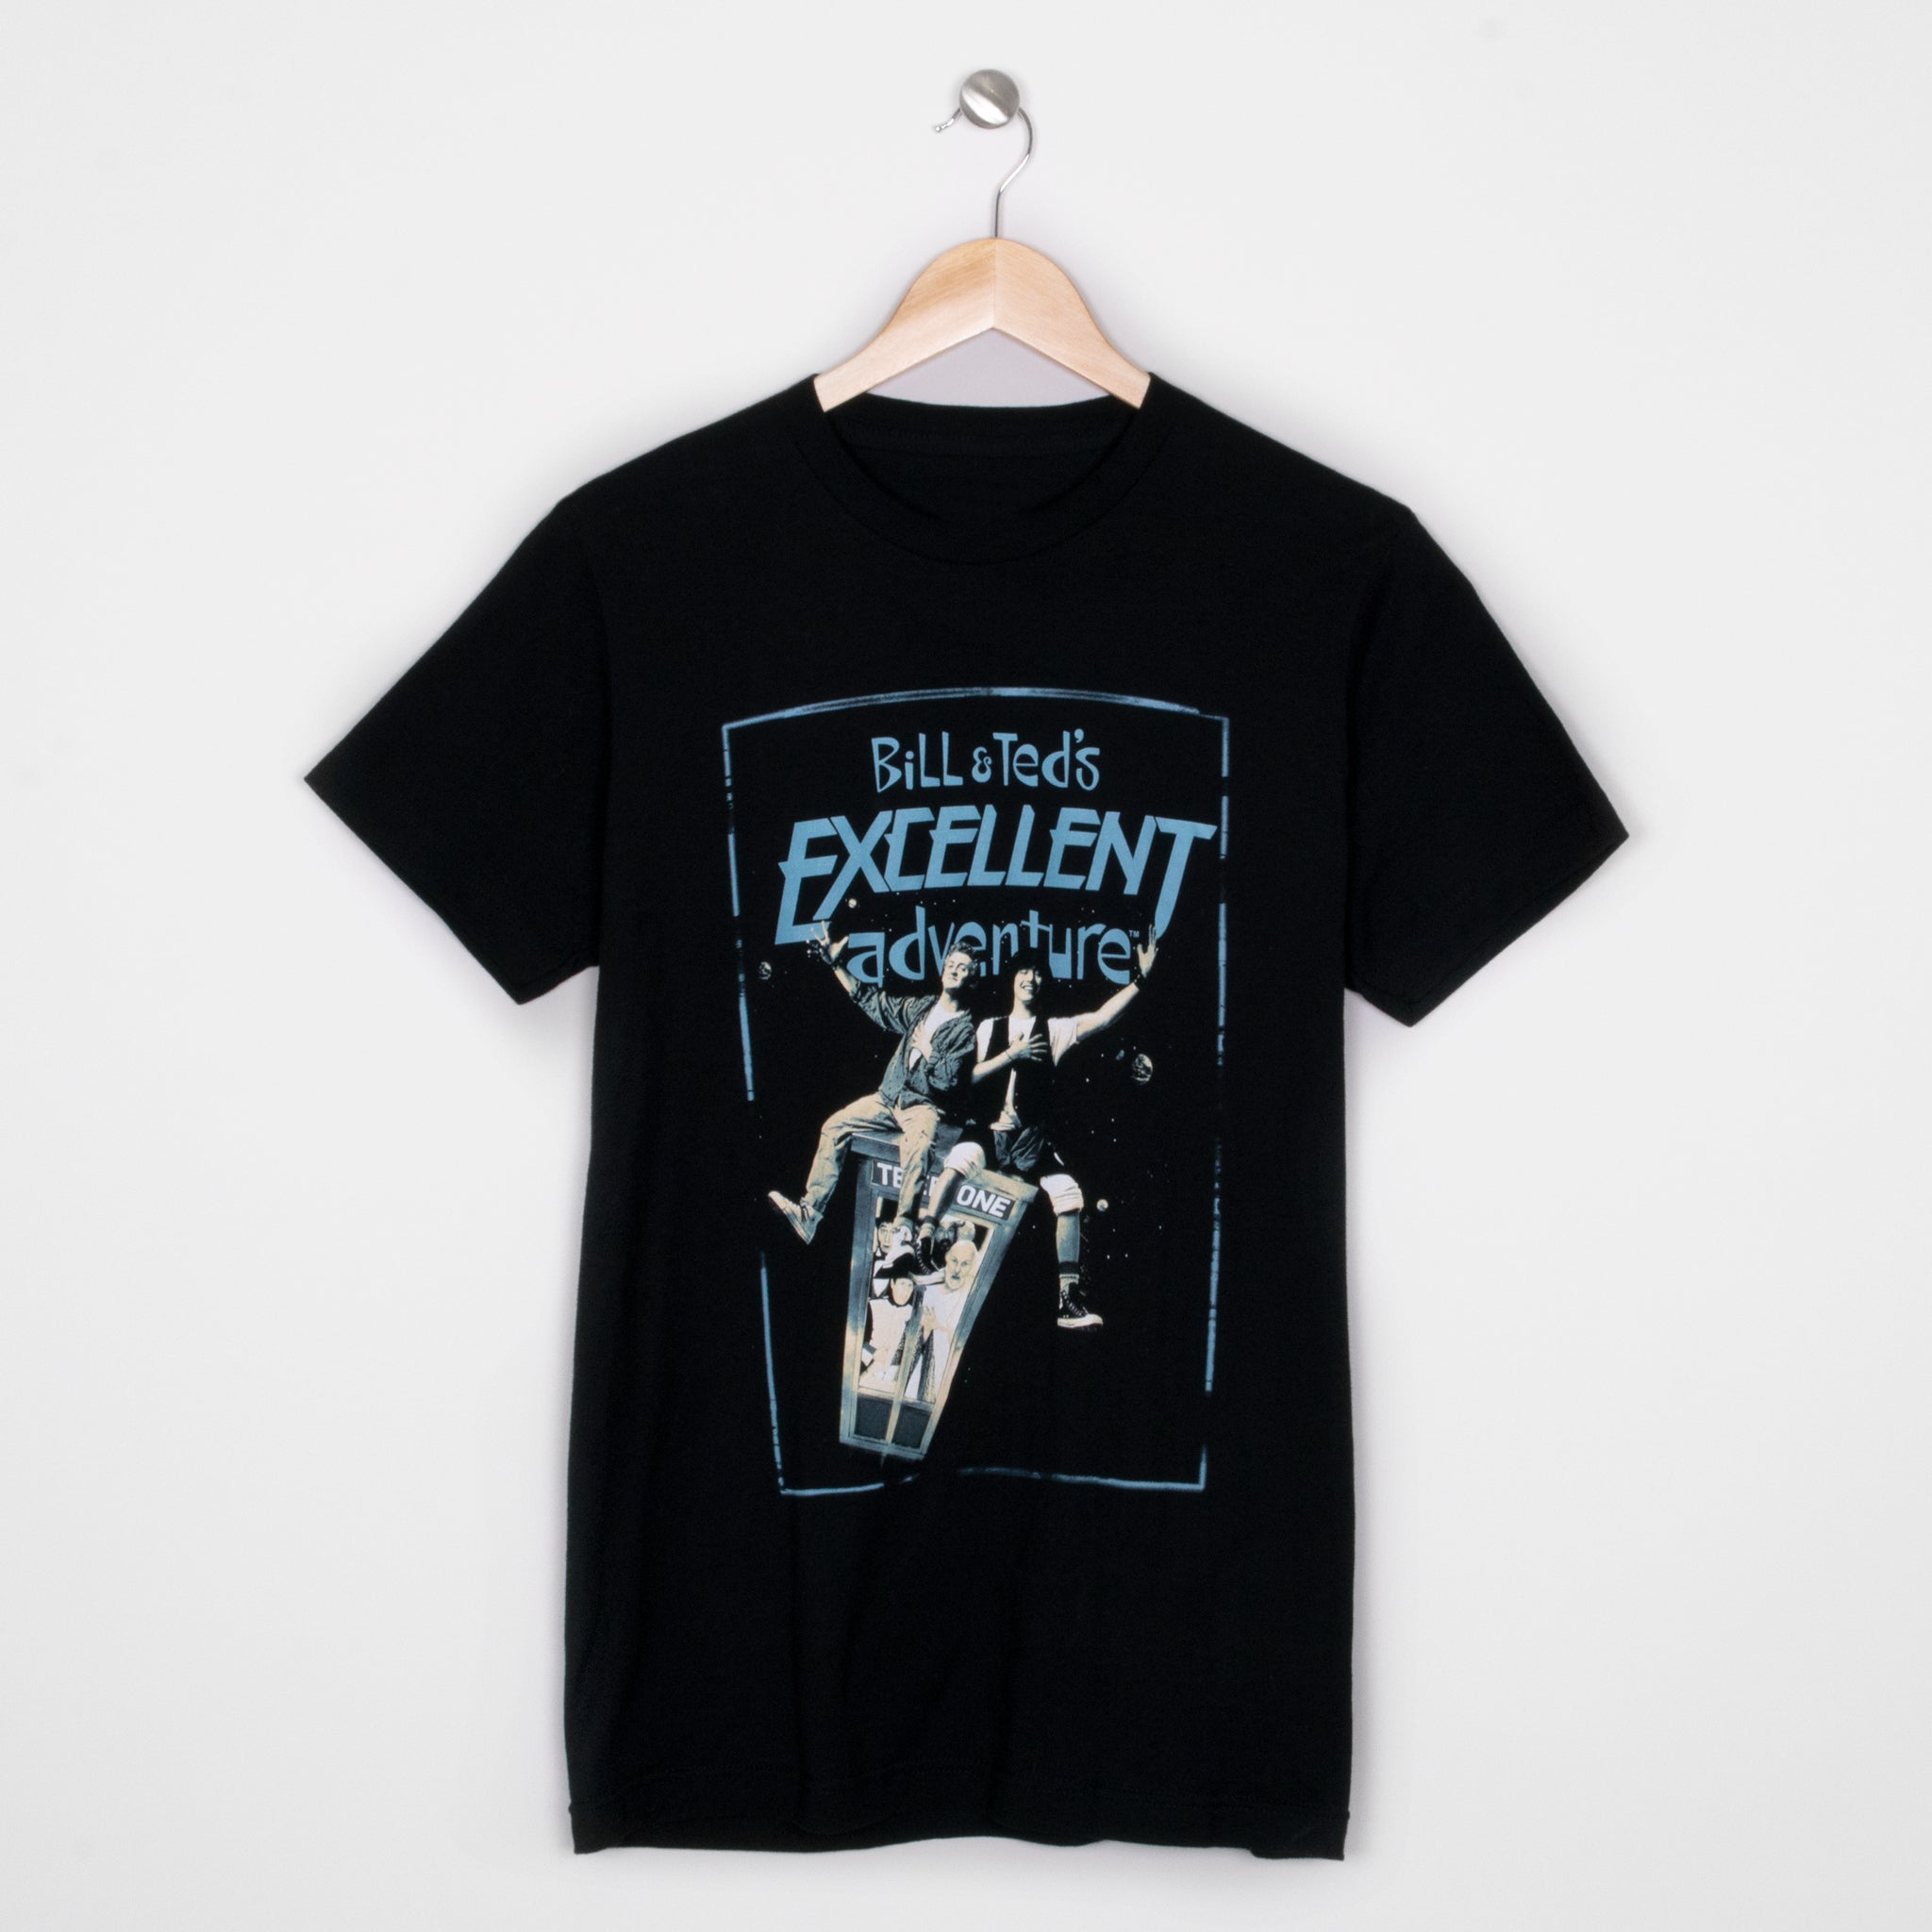 bill and ted's excellent adventure apparel t-shirt shirt culturefly